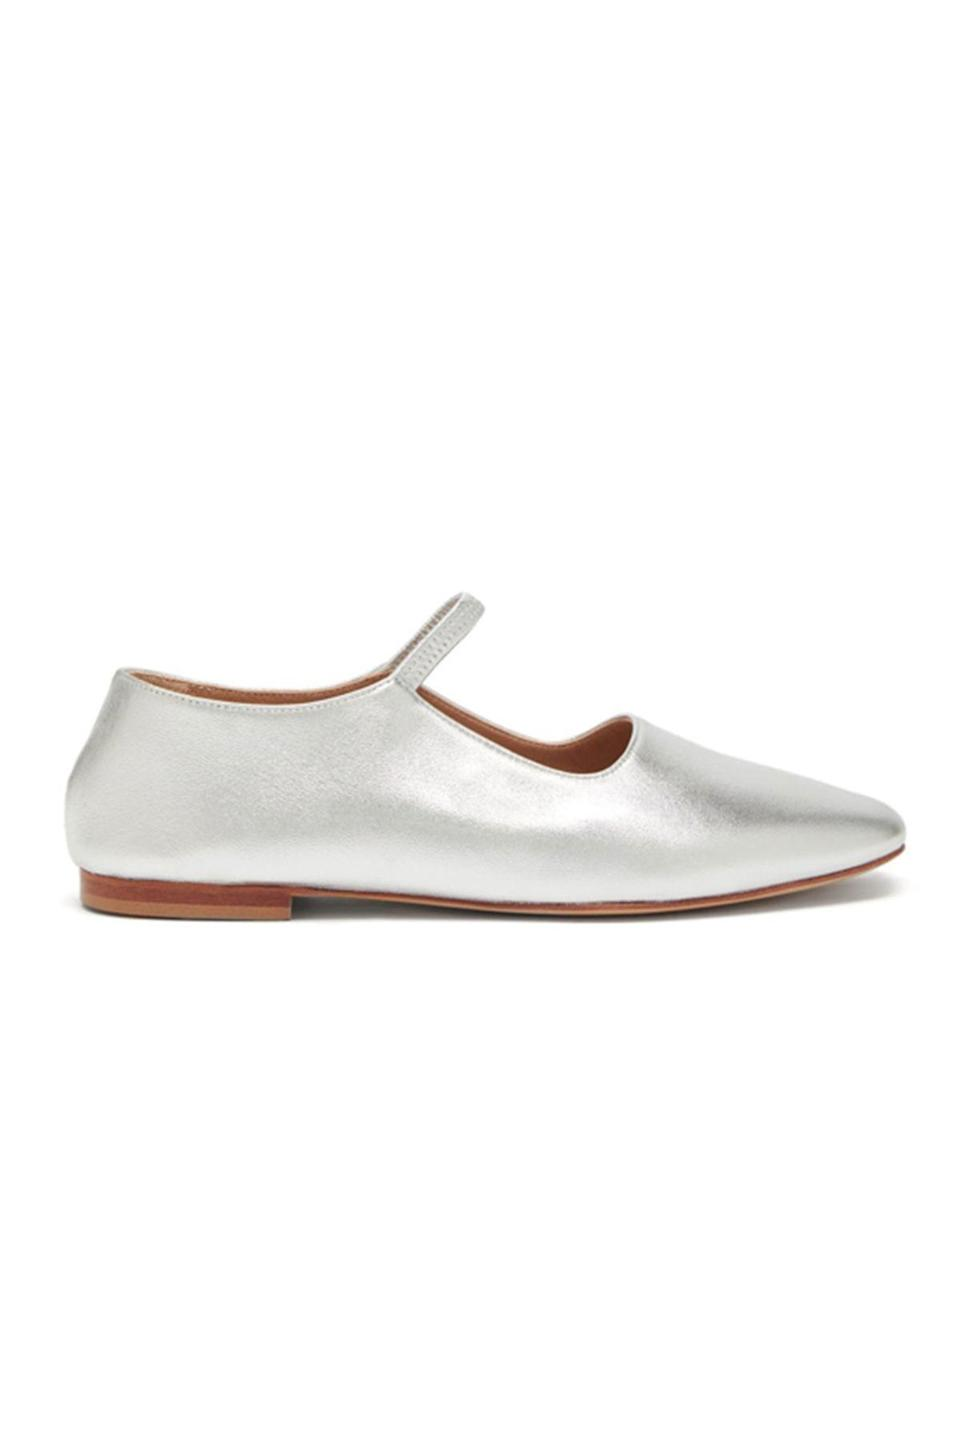 """<p><strong>Mansur Gavriel</strong></p><p>matchesfashion.com</p><p><strong>$395.00</strong></p><p><a href=""""https://go.redirectingat.com?id=74968X1596630&url=https%3A%2F%2Fwww.matchesfashion.com%2Fus%2Fproducts%2F1378707&sref=https%3A%2F%2Fwww.townandcountrymag.com%2Fstyle%2Ffashion-trends%2Fg36544376%2Fbest-metallic-accessories%2F"""" rel=""""nofollow noopener"""" target=""""_blank"""" data-ylk=""""slk:Shop Now"""" class=""""link rapid-noclick-resp"""">Shop Now</a></p><p>Mary Janes are having a resurgence this year. We like Mansur Gavriel's twist on the style with a glove fit and soft silver leather. </p>"""